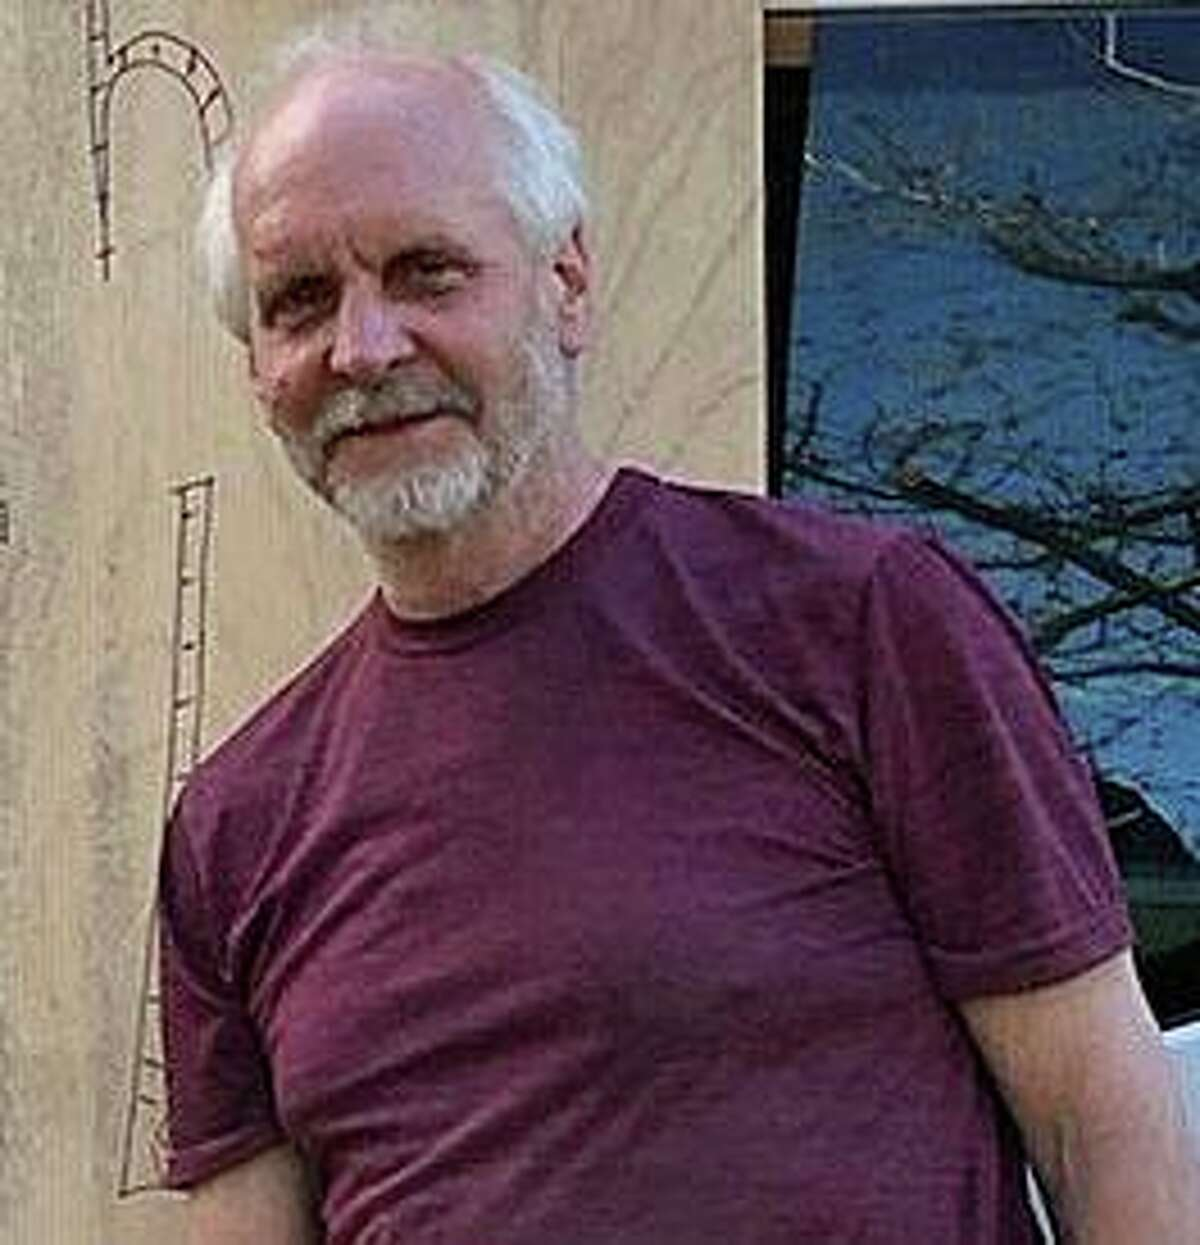 David Marquard , 64, of Torrington, was last seen on Monday morning on July 20, 2020, before going to work as a carpenter. Marquard operates a white 2013 Ford Econoline E250 van with a white roof rack that bears a Connecticut license plate of 8CT-281.